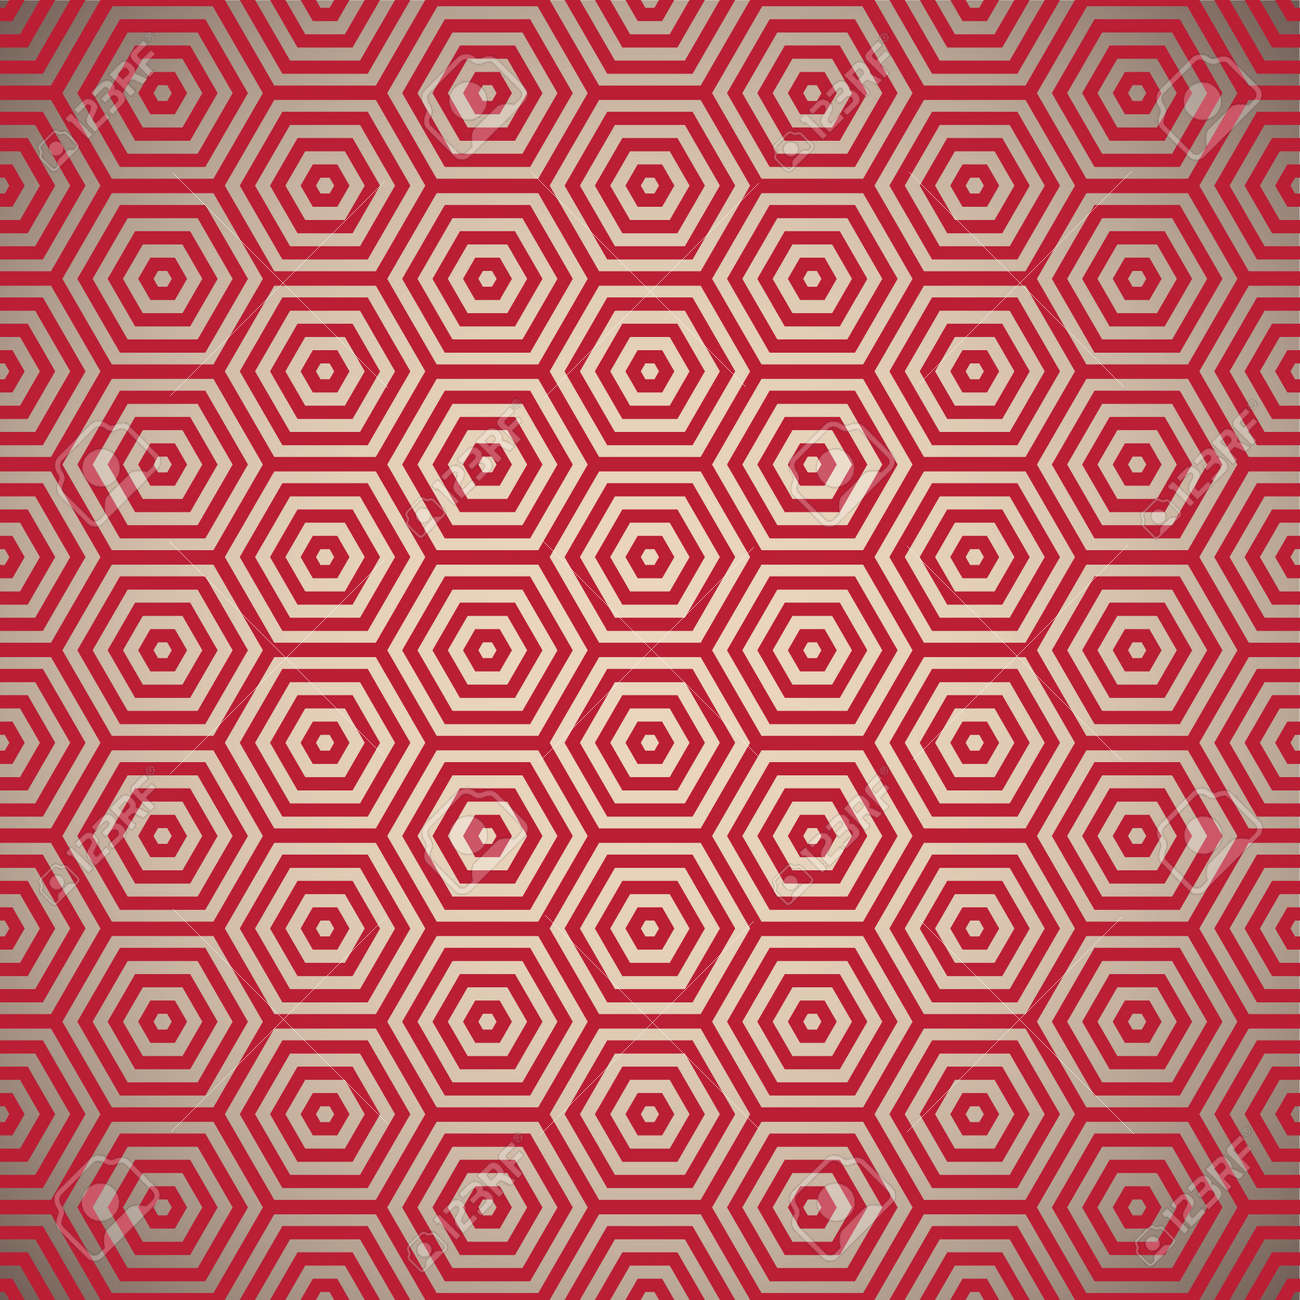 Retro inspired red seamless background pattern design - 9751486